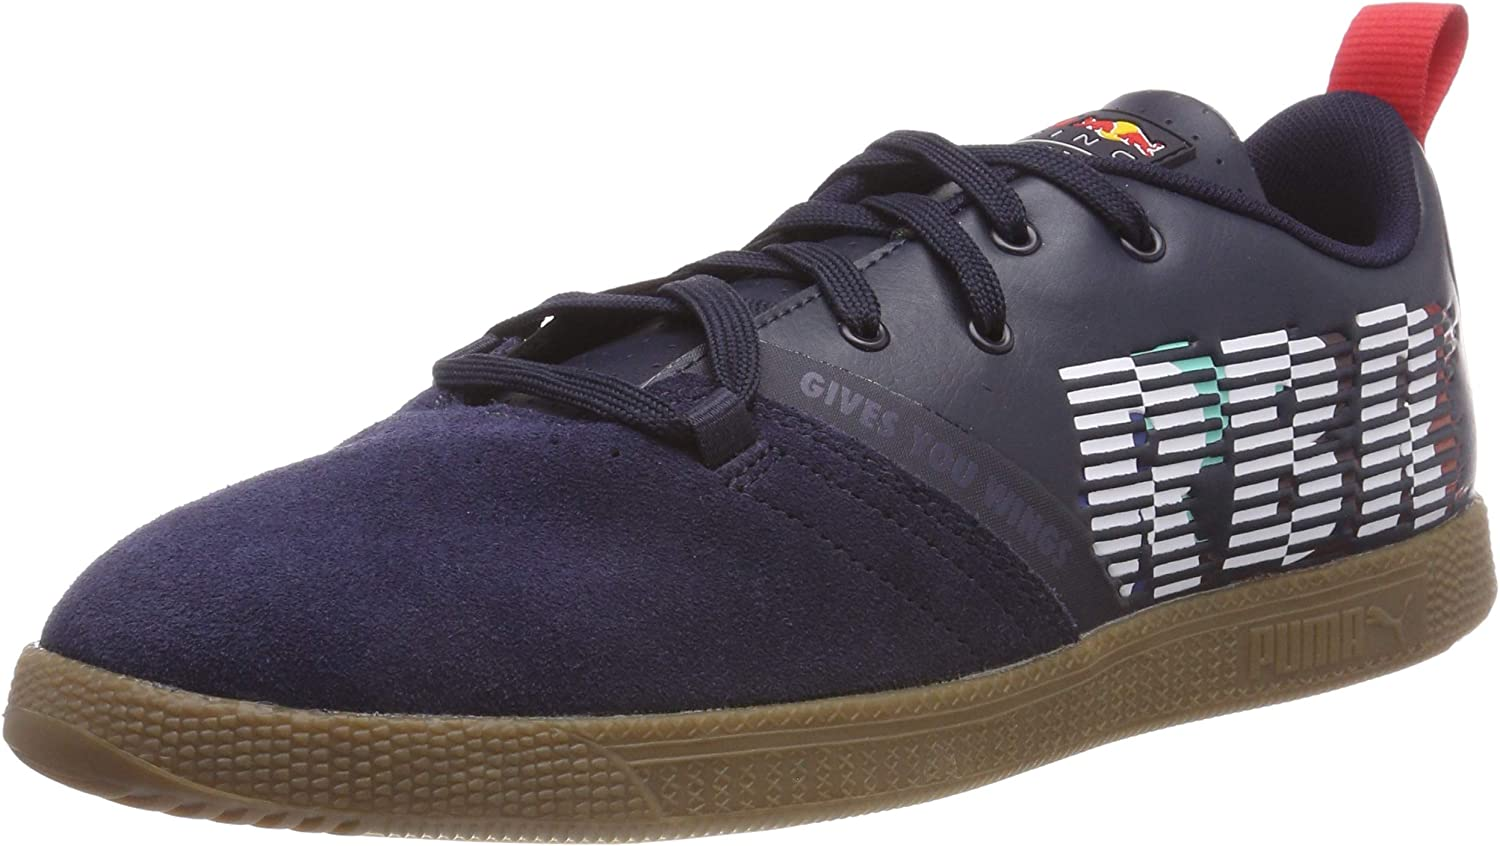 Puma Unisex Adults' RBR Cups Lo Low-Top Sneakers